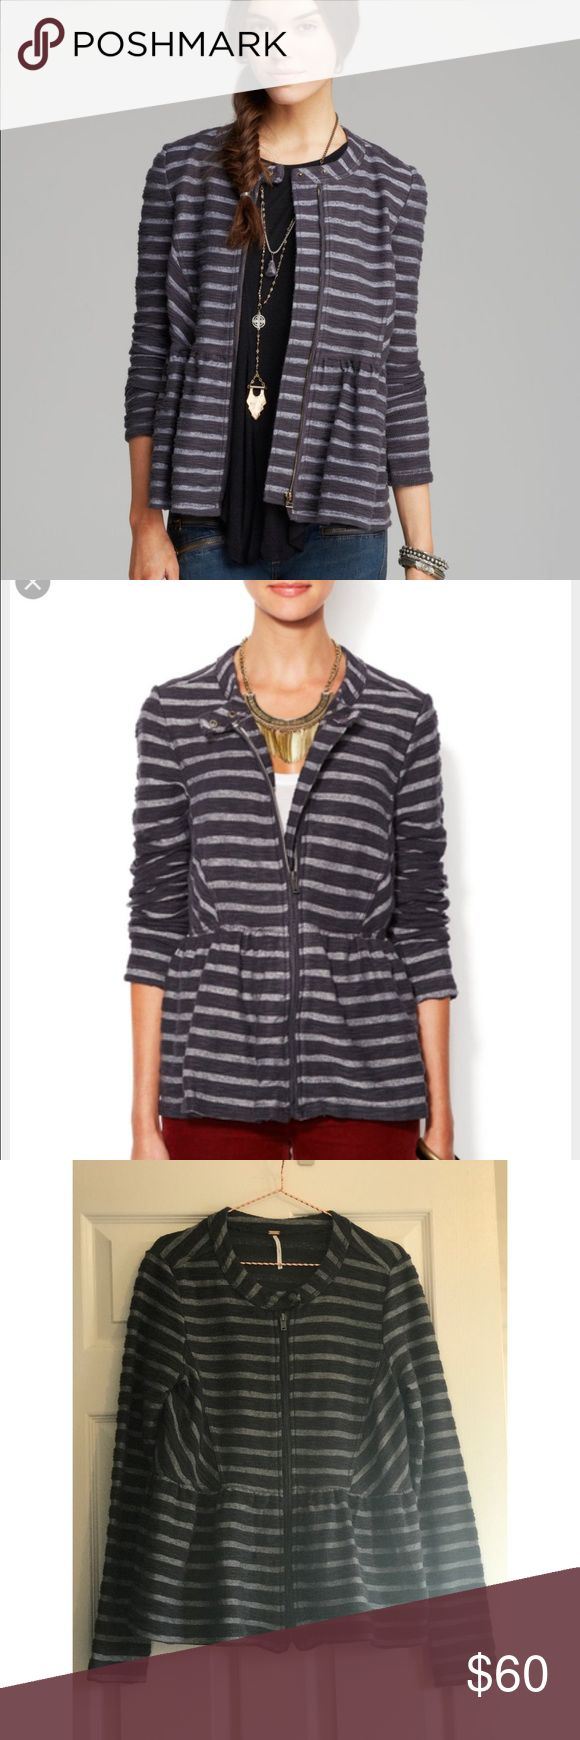 FREE PEOPLE Striped Peplum Cotton Jacket Striped textured peplum jacket with snap collar and zip closure. 85% cotton. Free People Jackets & Coats